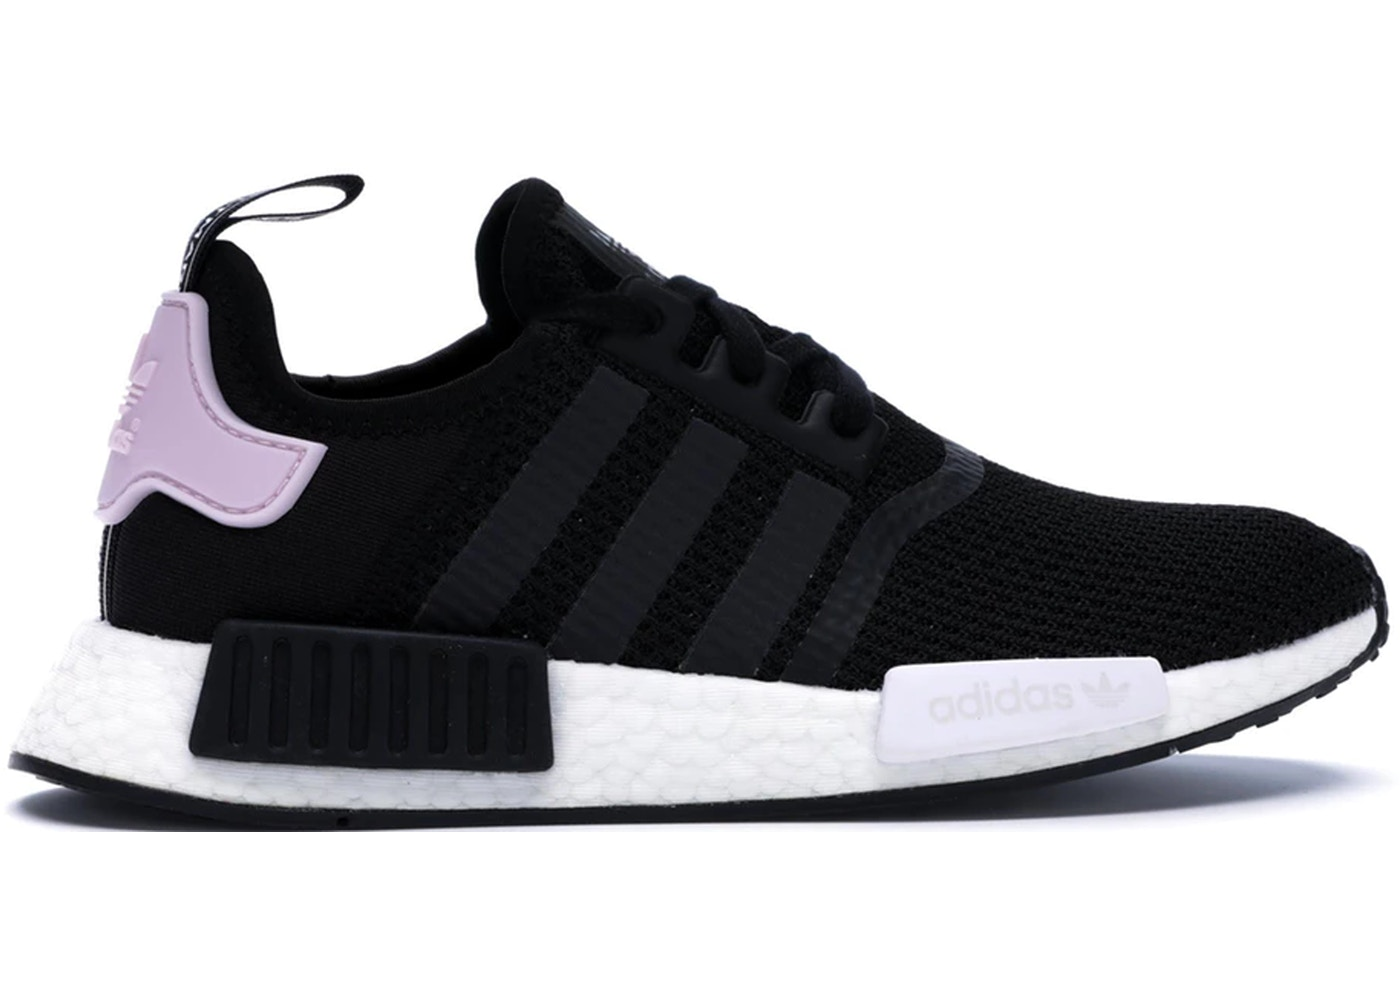 0a15a89d32c70 adidas NMD Shoes - Release Date